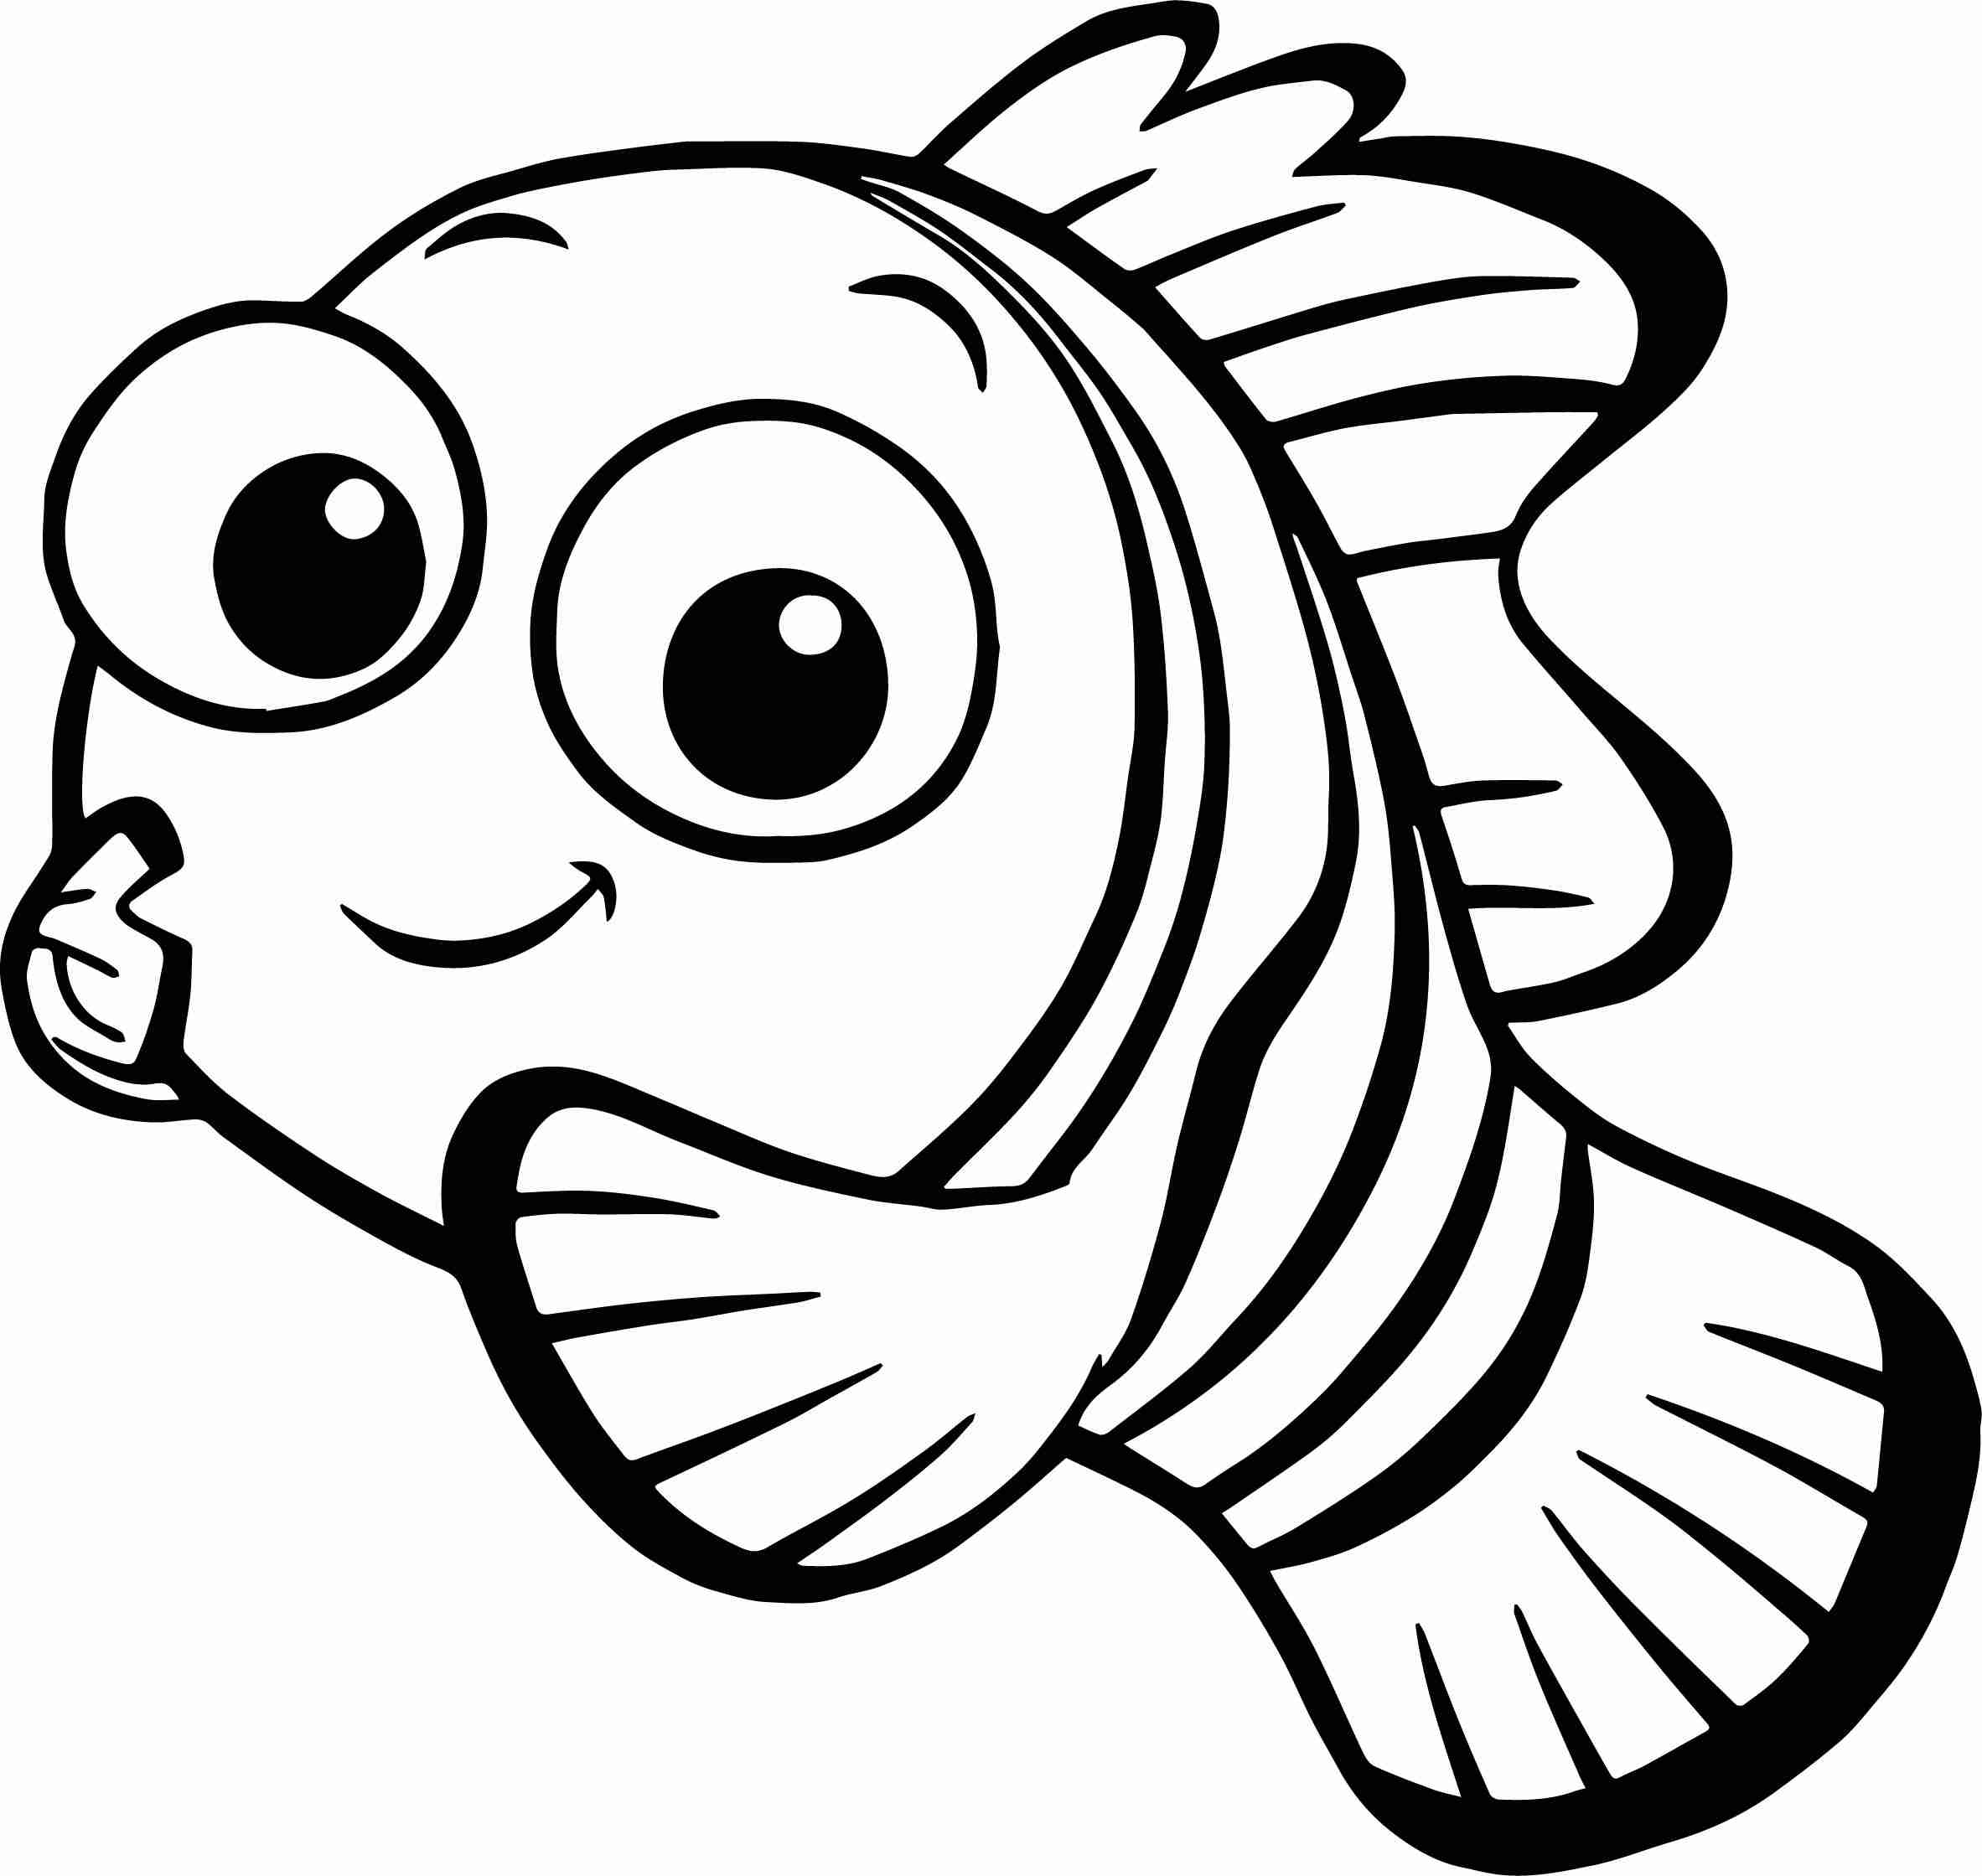 Free Nemo Coloring Pages At Getdrawings Com Free For Personal Use